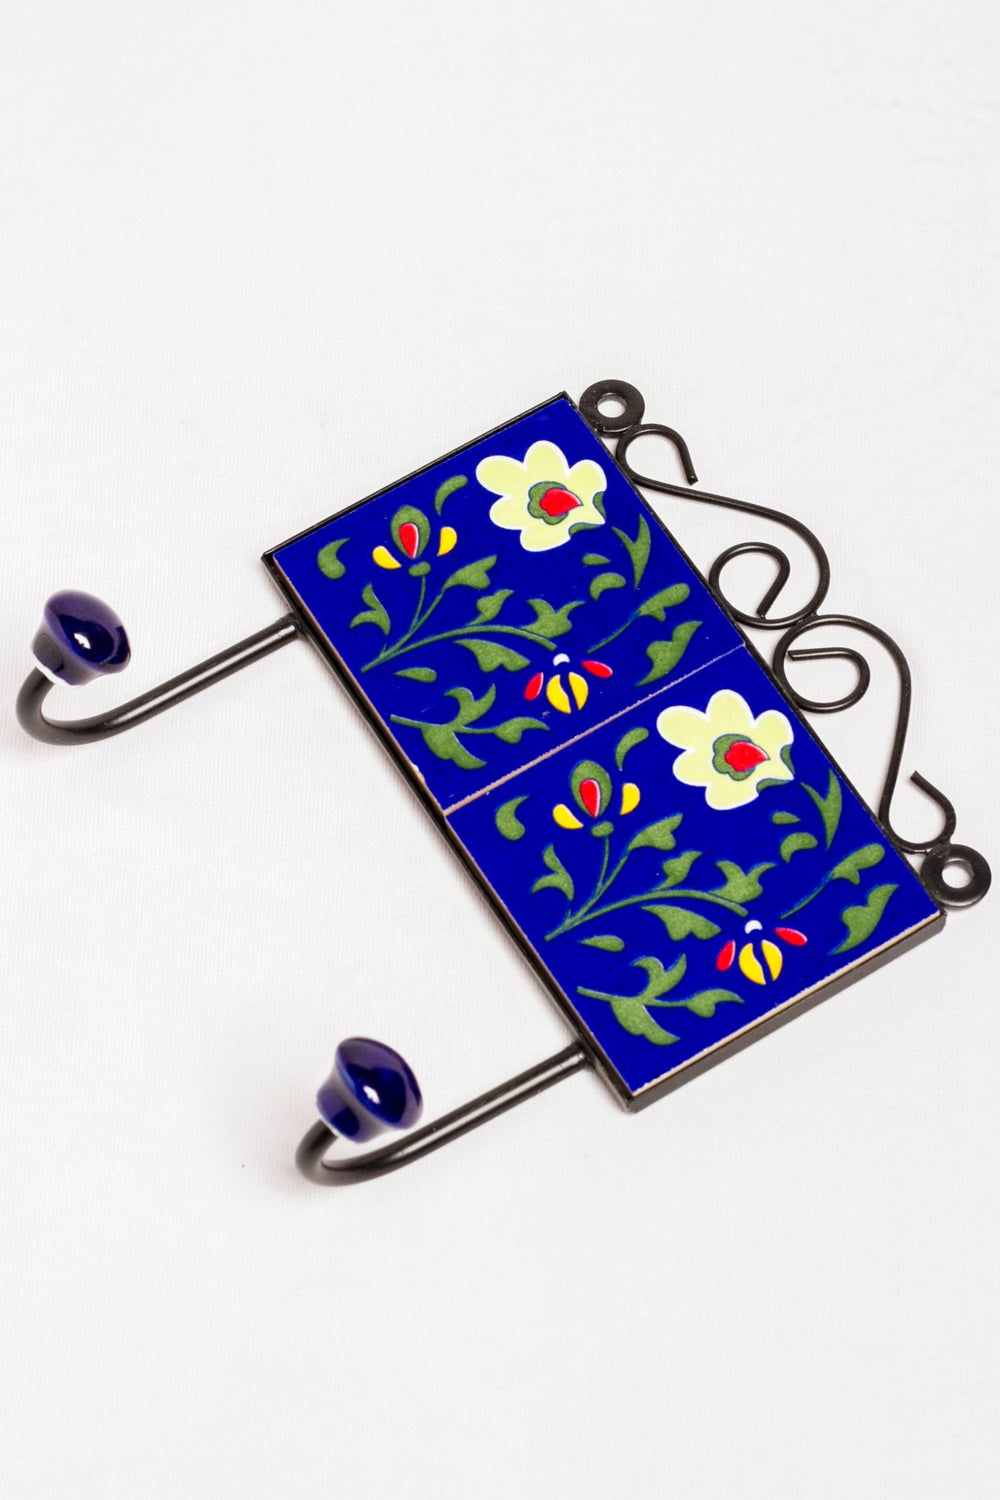 Metal and single ceramic tile wall hook, blue with green and red floral motif